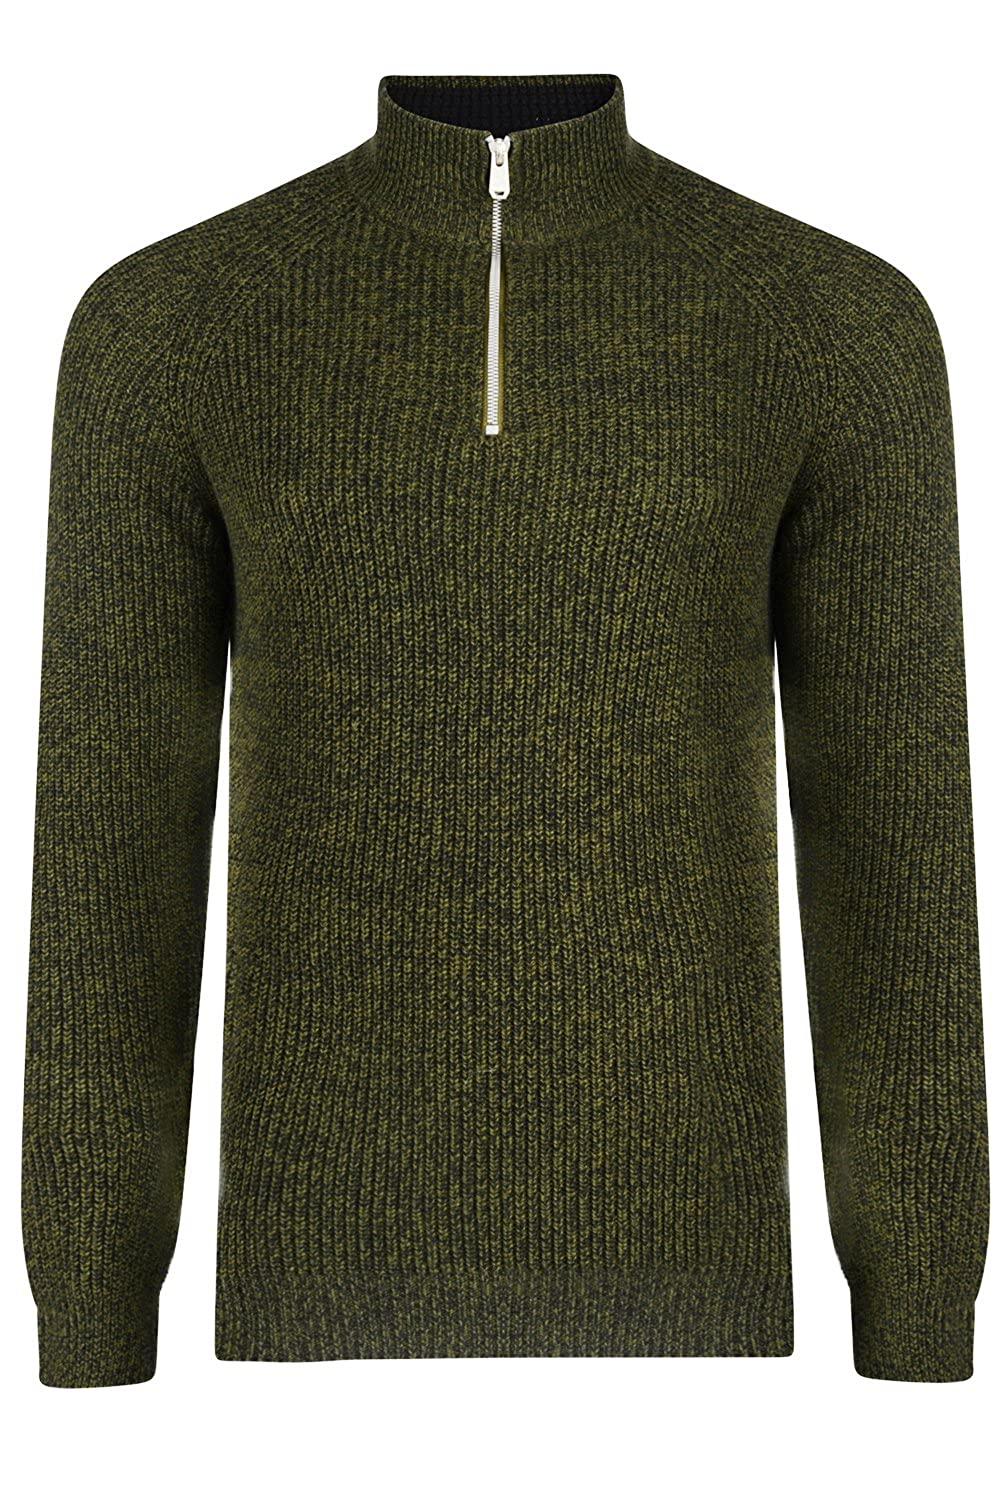 8fe6a375777b5e Threadbare Mens Designer Digby 1/4 Zip Neck Sweater: Amazon.co.uk: Clothing